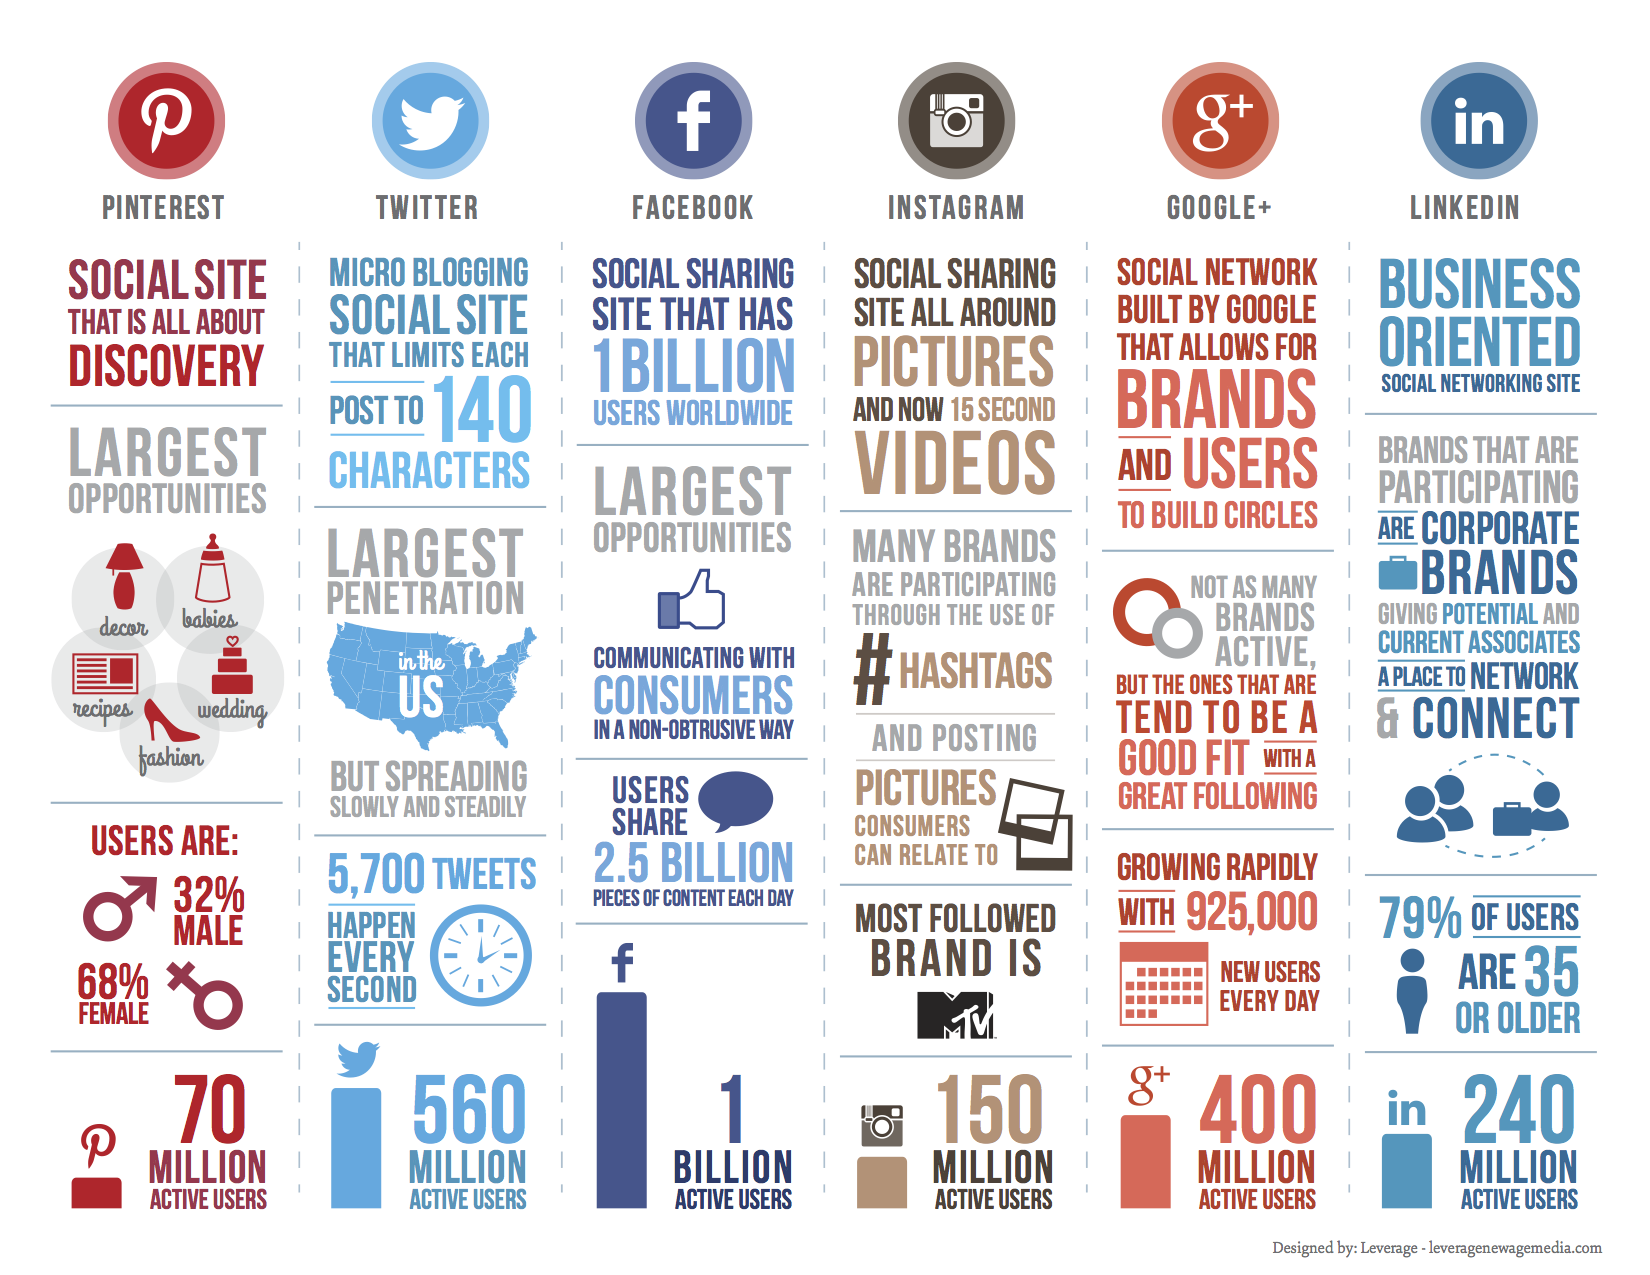 social-media-networks-stats-graphic-courtesy-of-leverage.com_